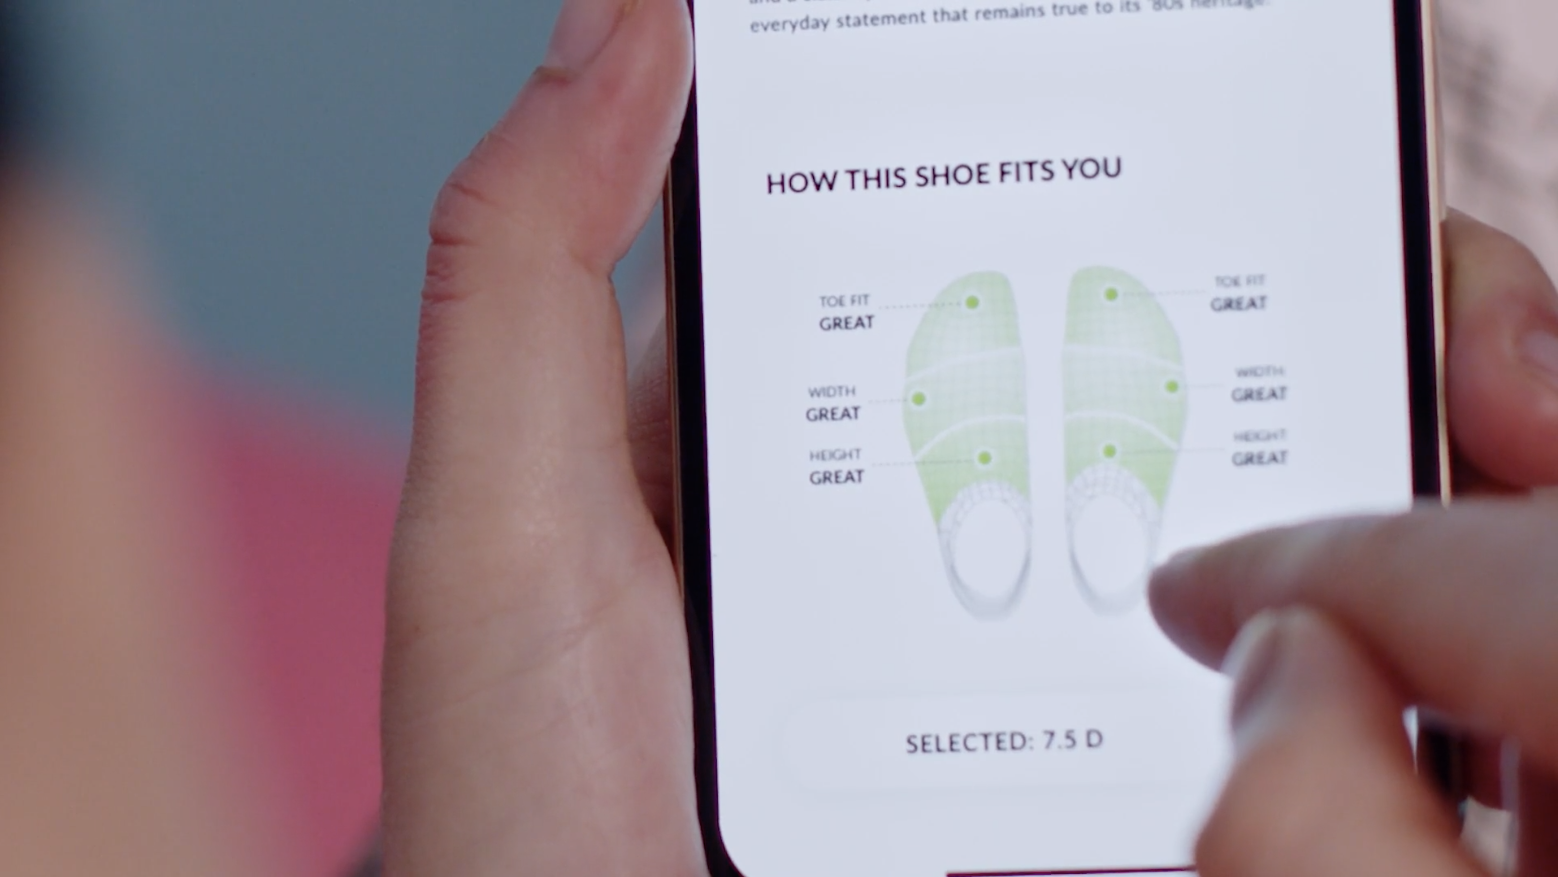 Known for its in-store foot scanner and integrated FitTech suite of 3D scanning and data tools designed to capture the dimensions of shoppers' feet to provide them with accurate shoe recommendations, Volumental now offers the same capabilities for individual shoppers that it did for its retailers via a mobile device.